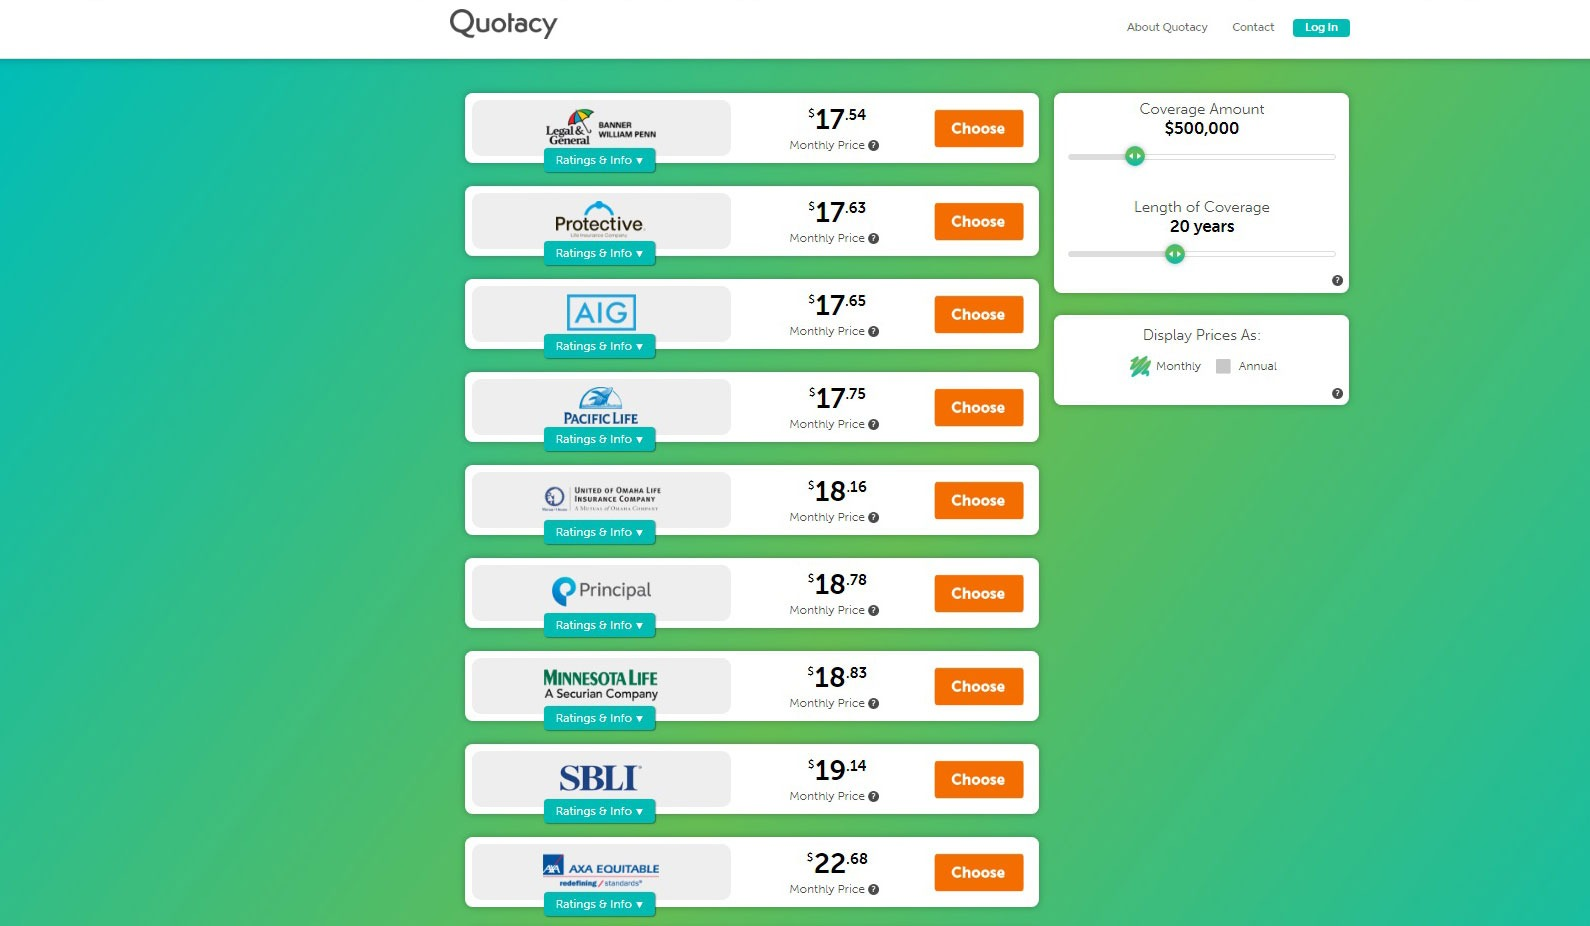 screenshot image of Quotacy's life insurance providers